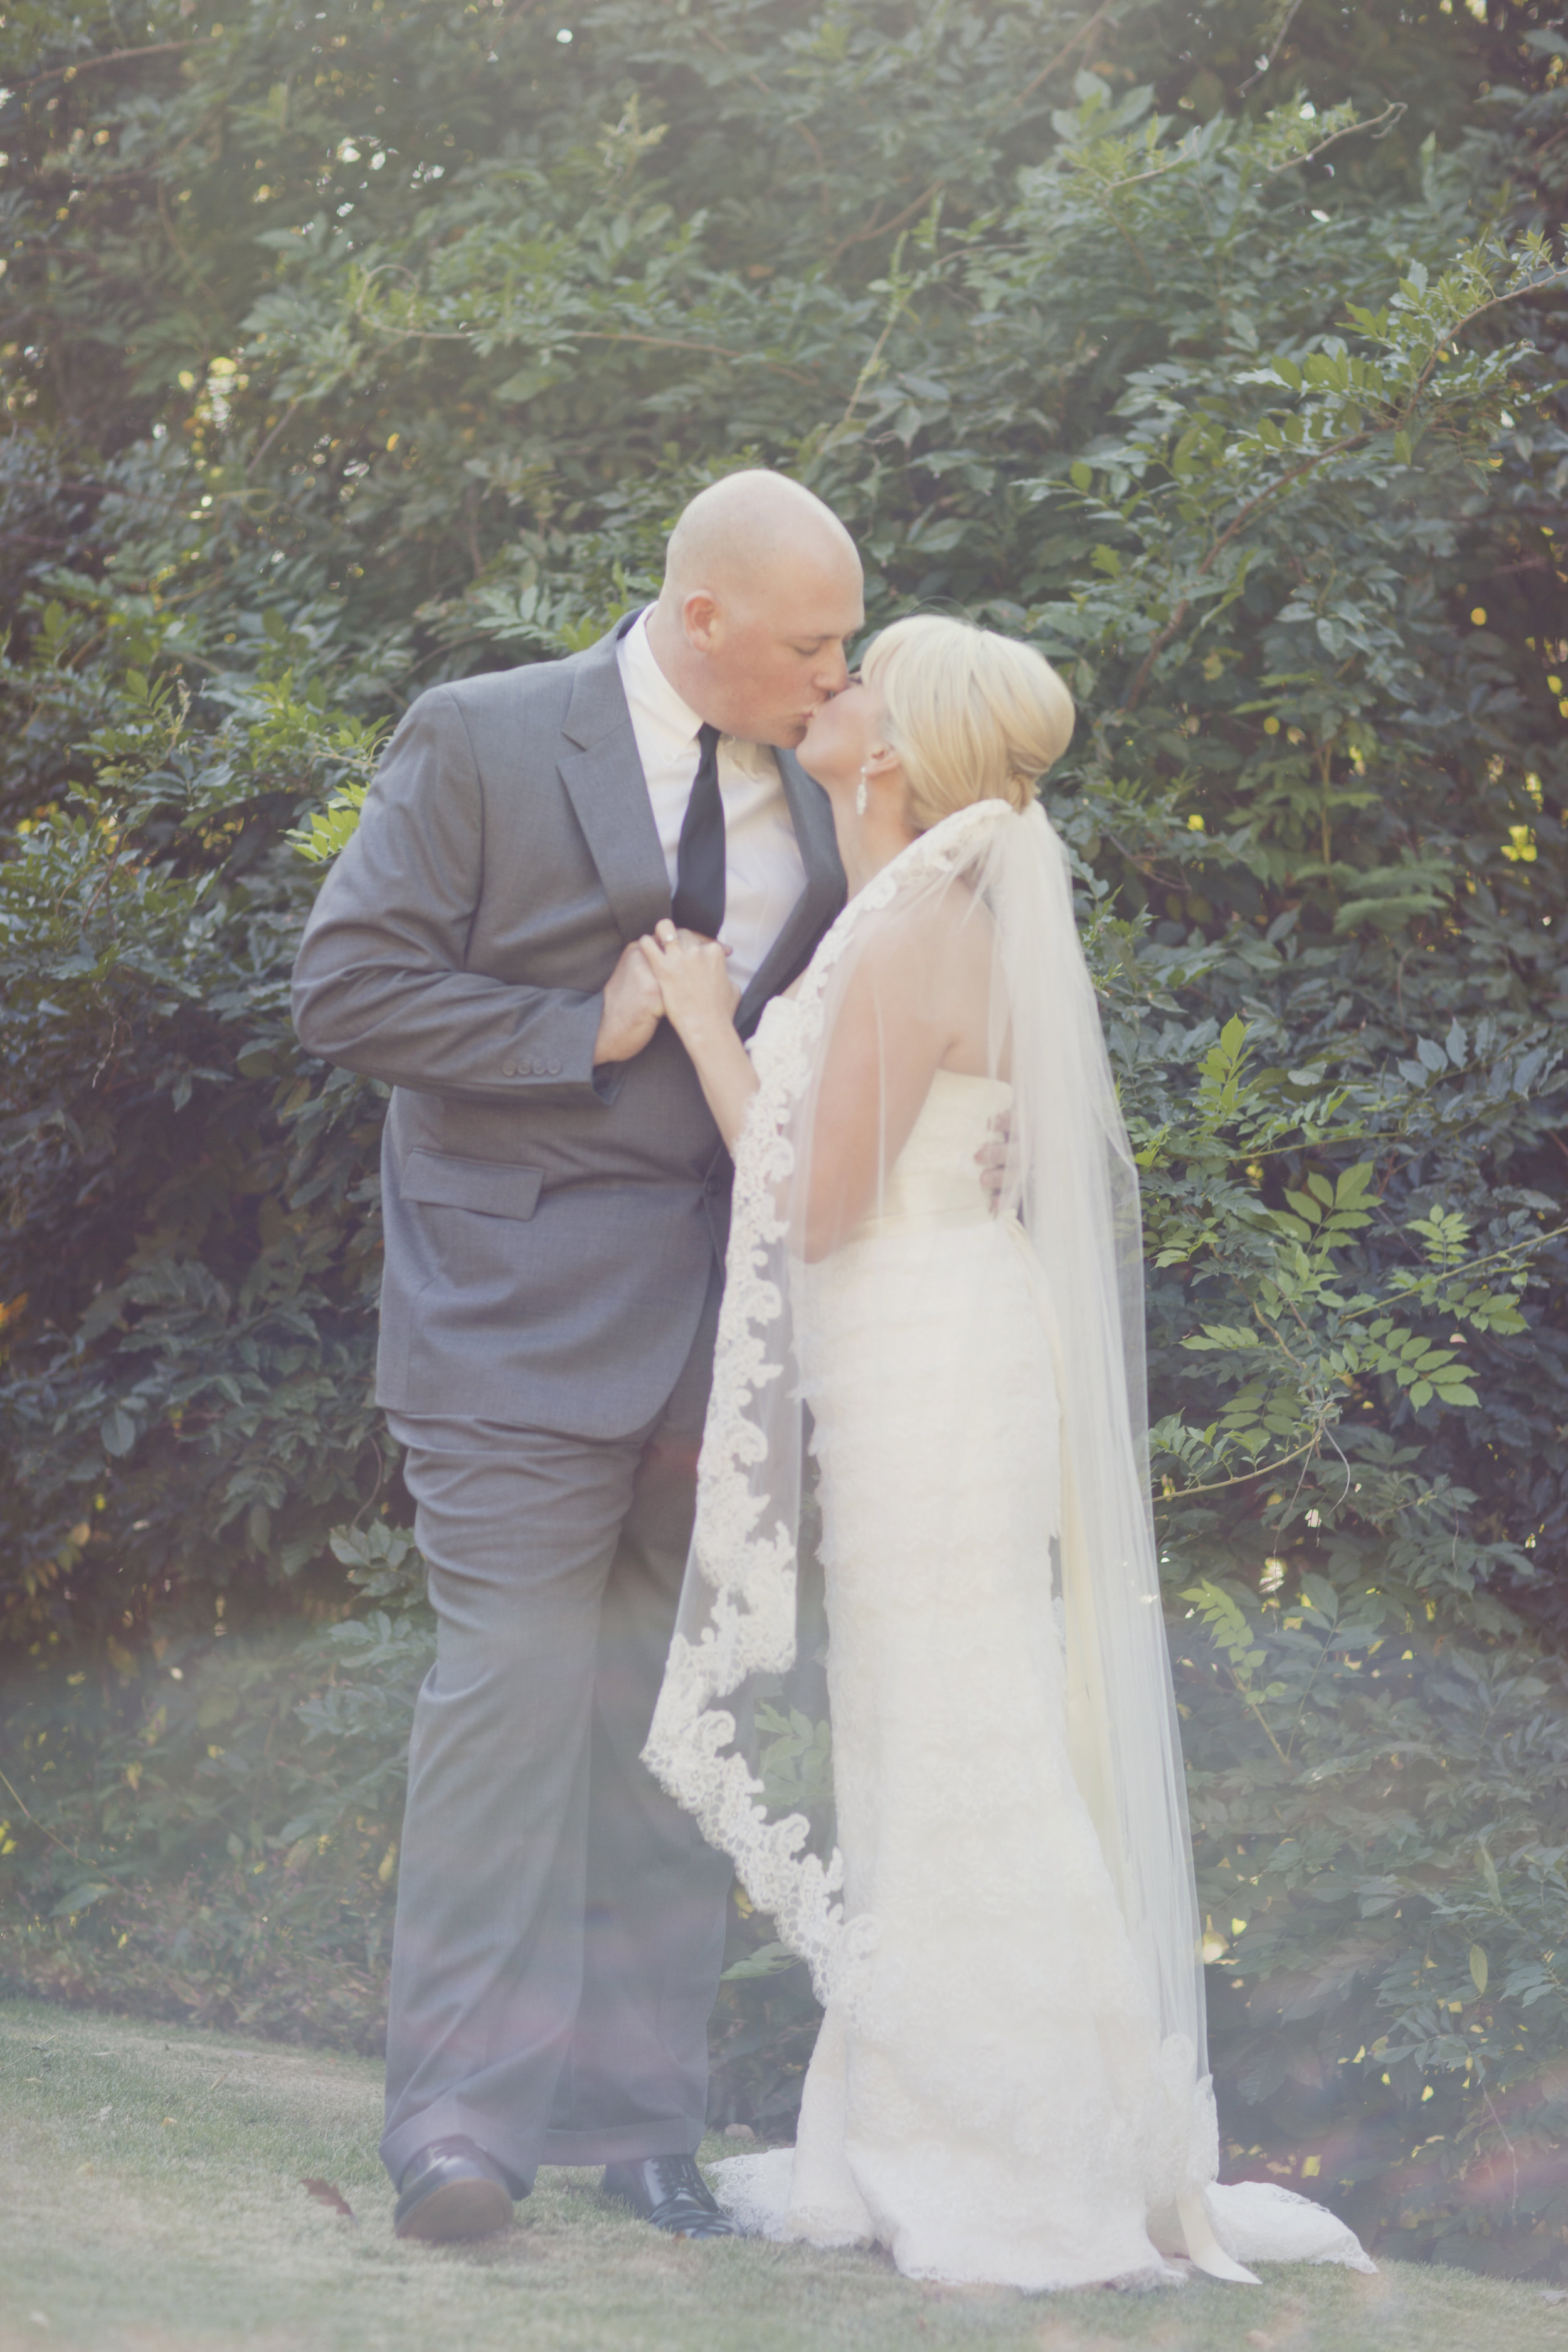 Simply-Charming-Socials_Atlanta-Wedding-Planner_Our-Labor-Of-Love_Maggie-and-Greg_5.jpg